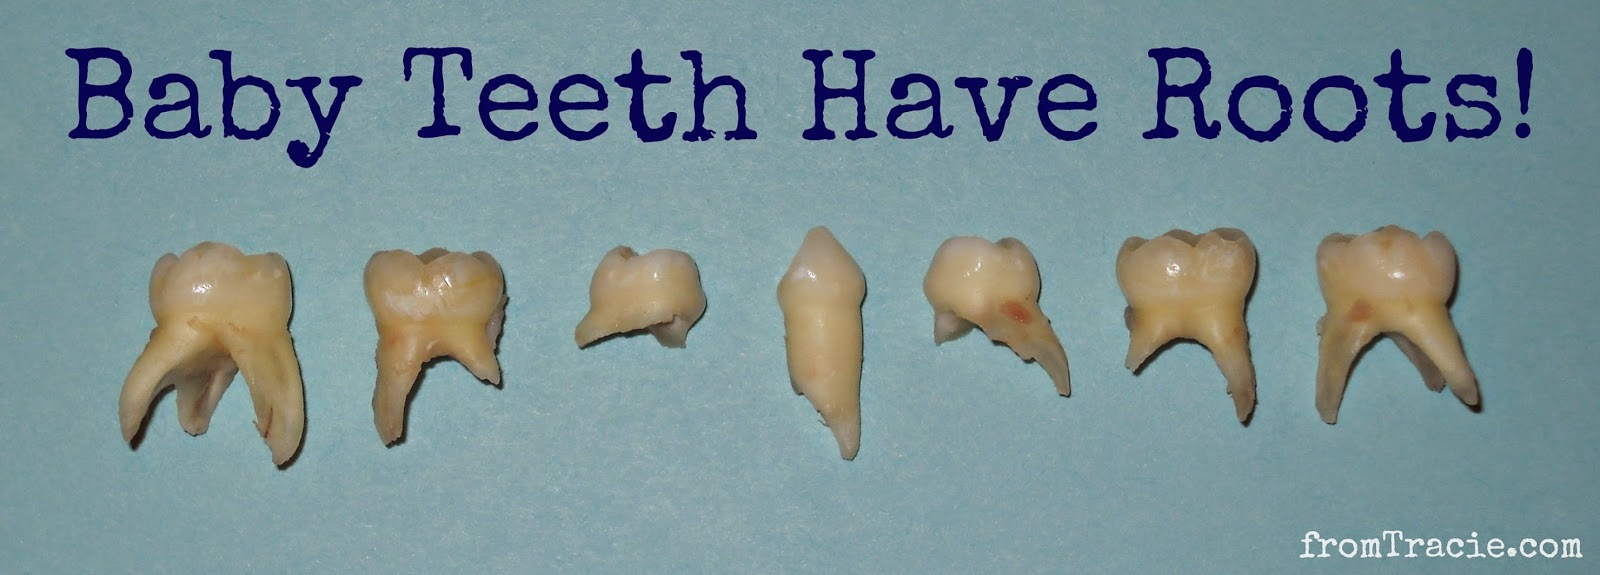 Baby Teeth Have Roots